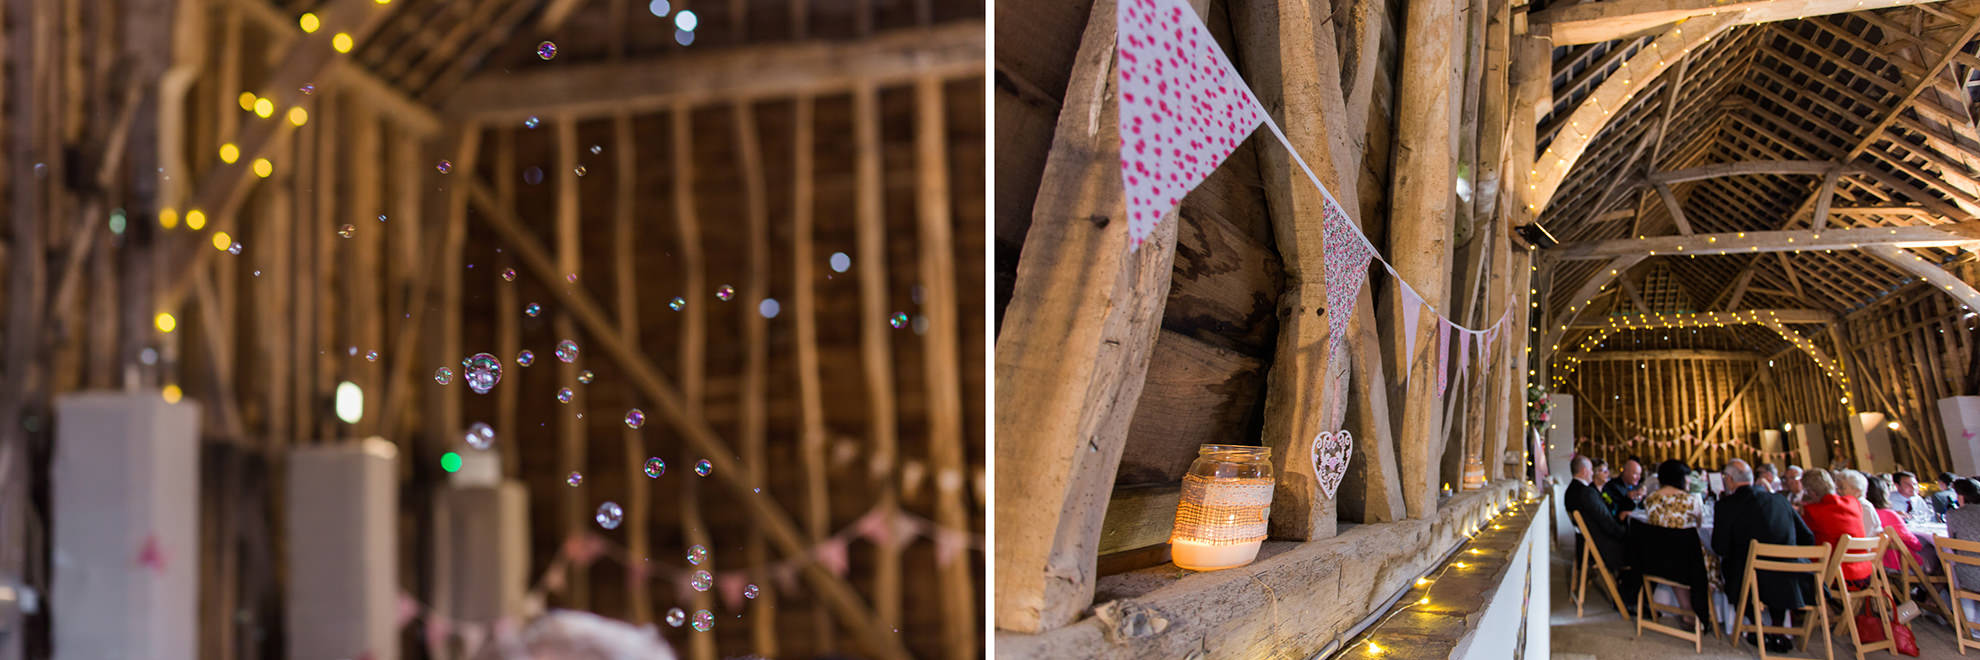 dyptich of bubbles and wedding bunting in Michelmersh barns hampshire